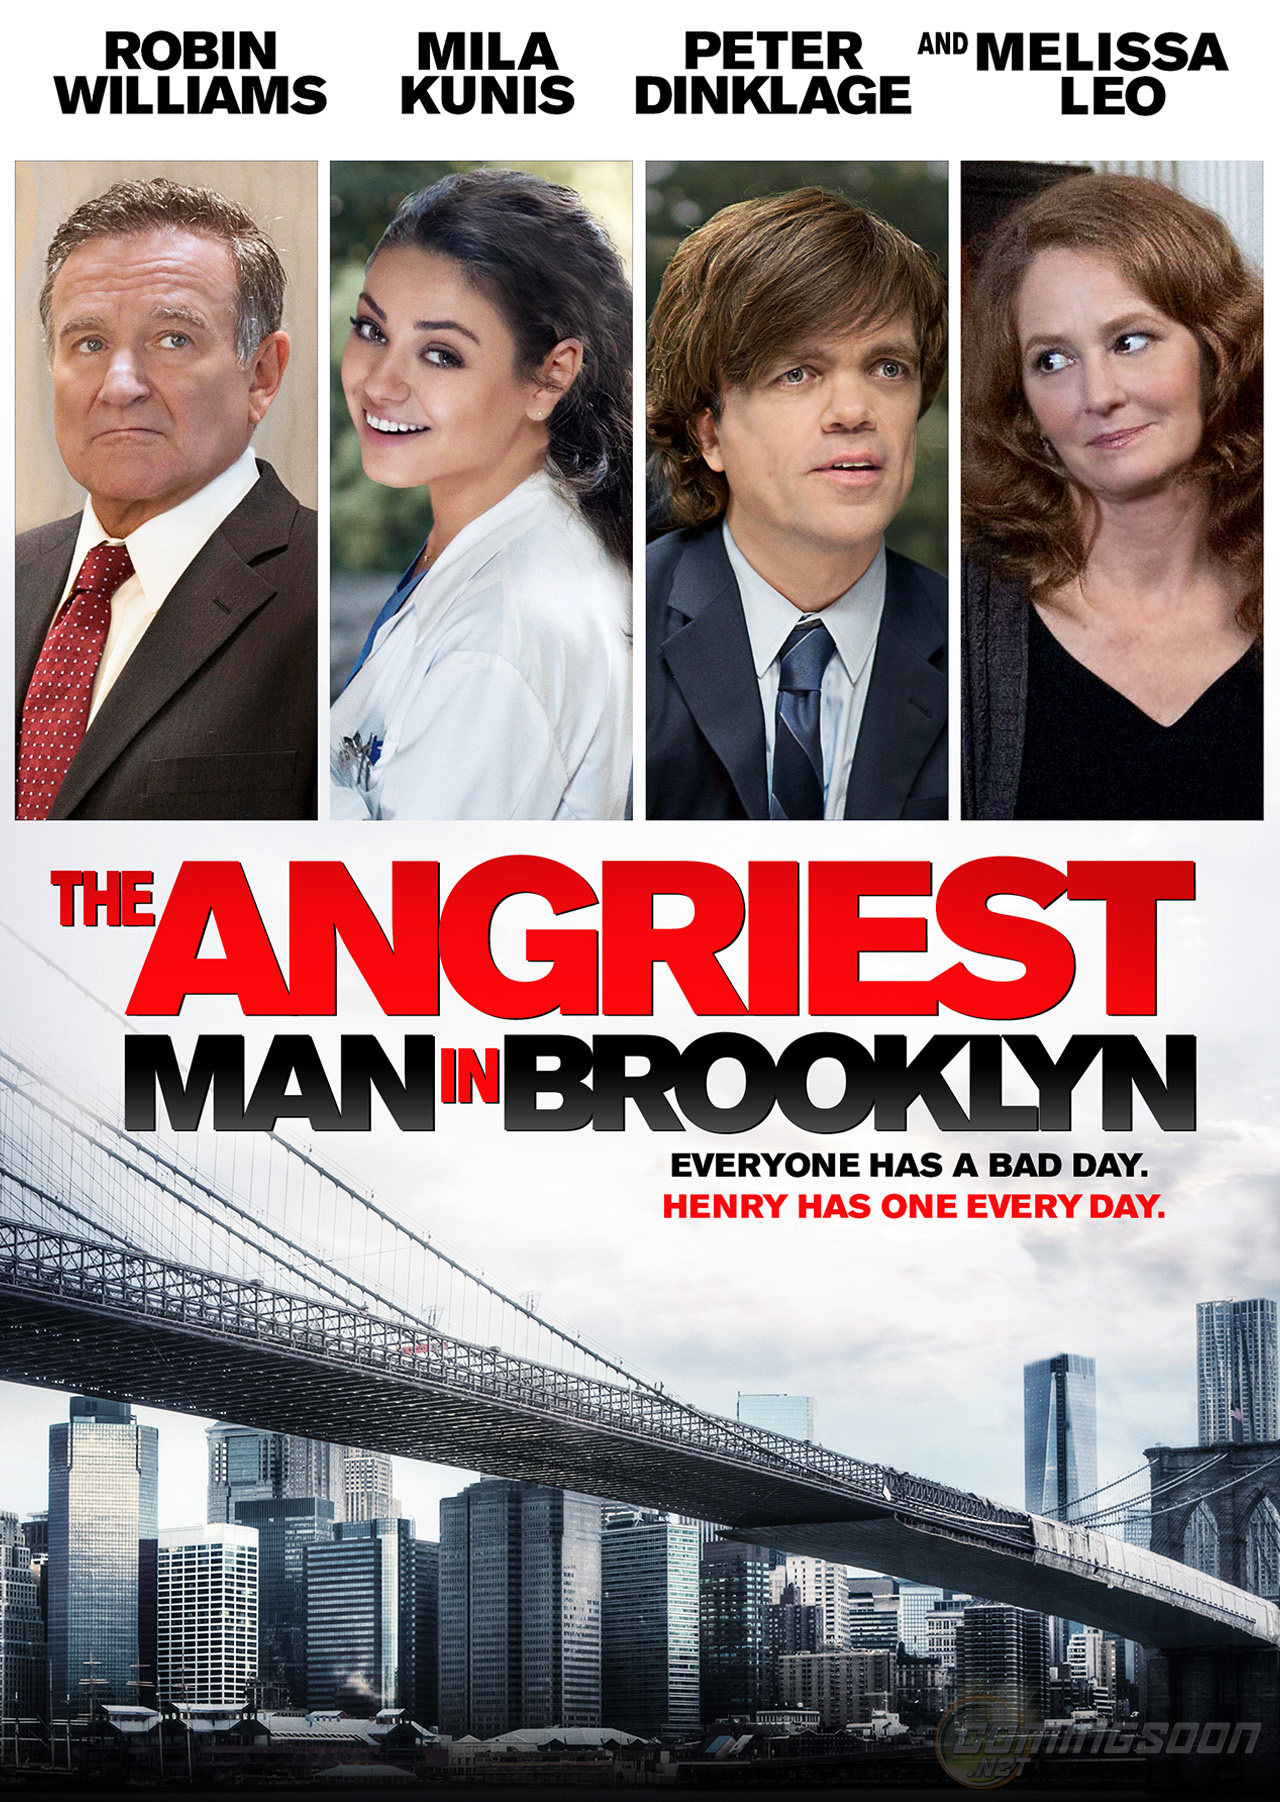 Exclusive Poster The Angriest Man In Brooklyn Starring